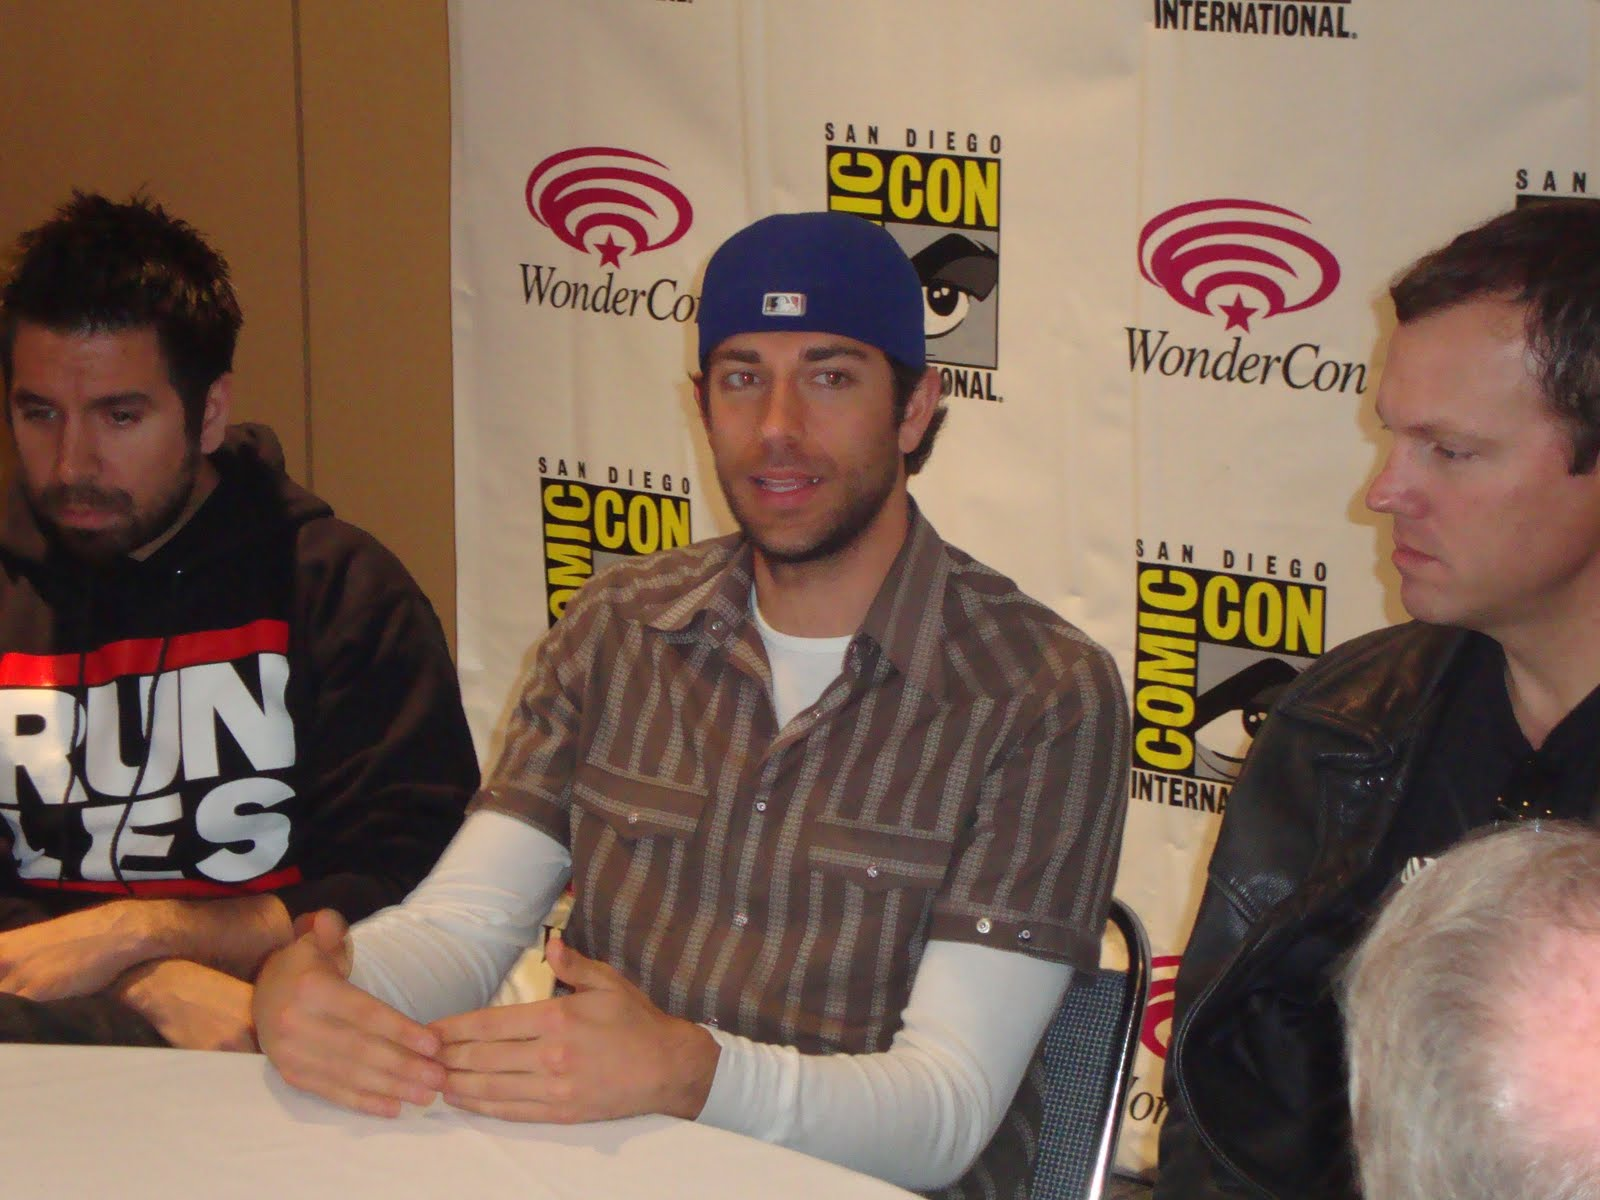 Chuck Cast Interviews Part Two Zachary Levi Joshua Gomez And Adam Baldwin Sandwichjohnfilms Get all the details on joshua gomez, watch interviews and videos, and see what else bing knows. sandwichjohnfilms com